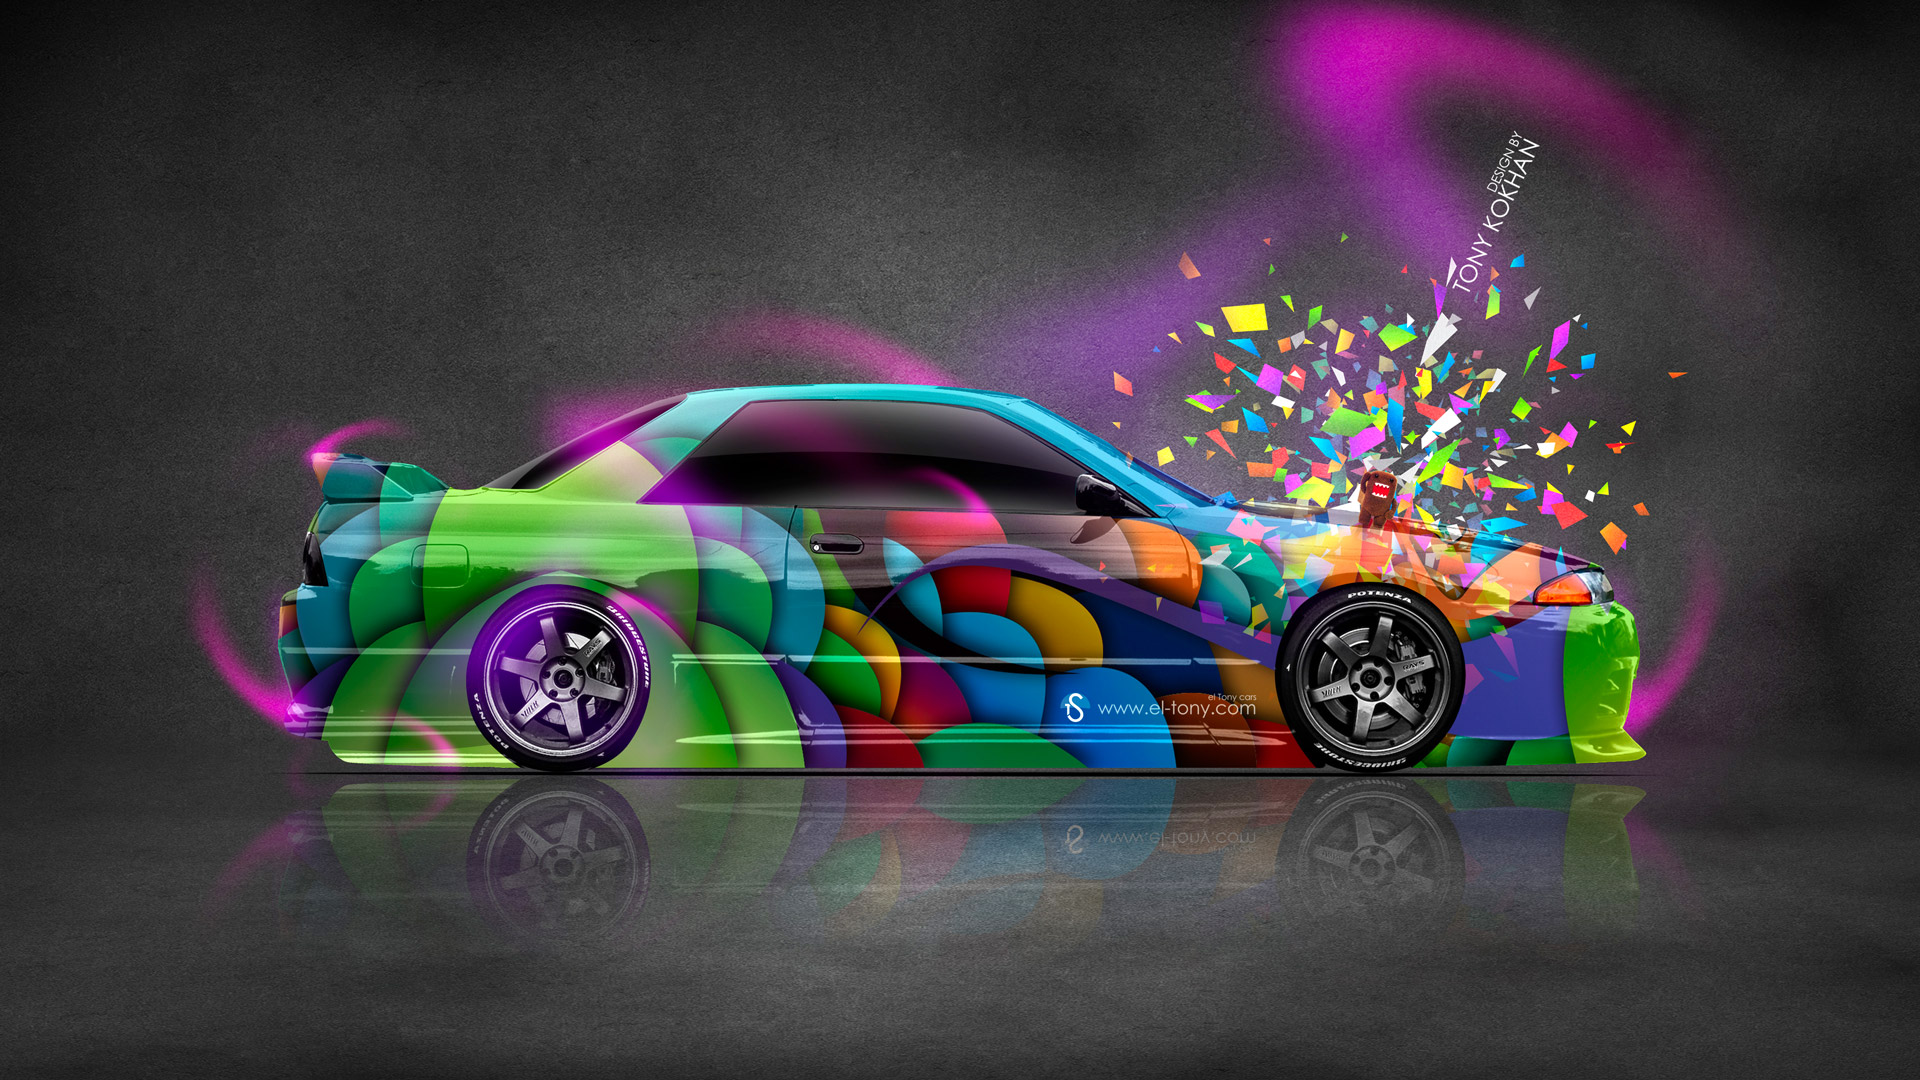 Toy Car 2014 Art HD Wallpapers Design